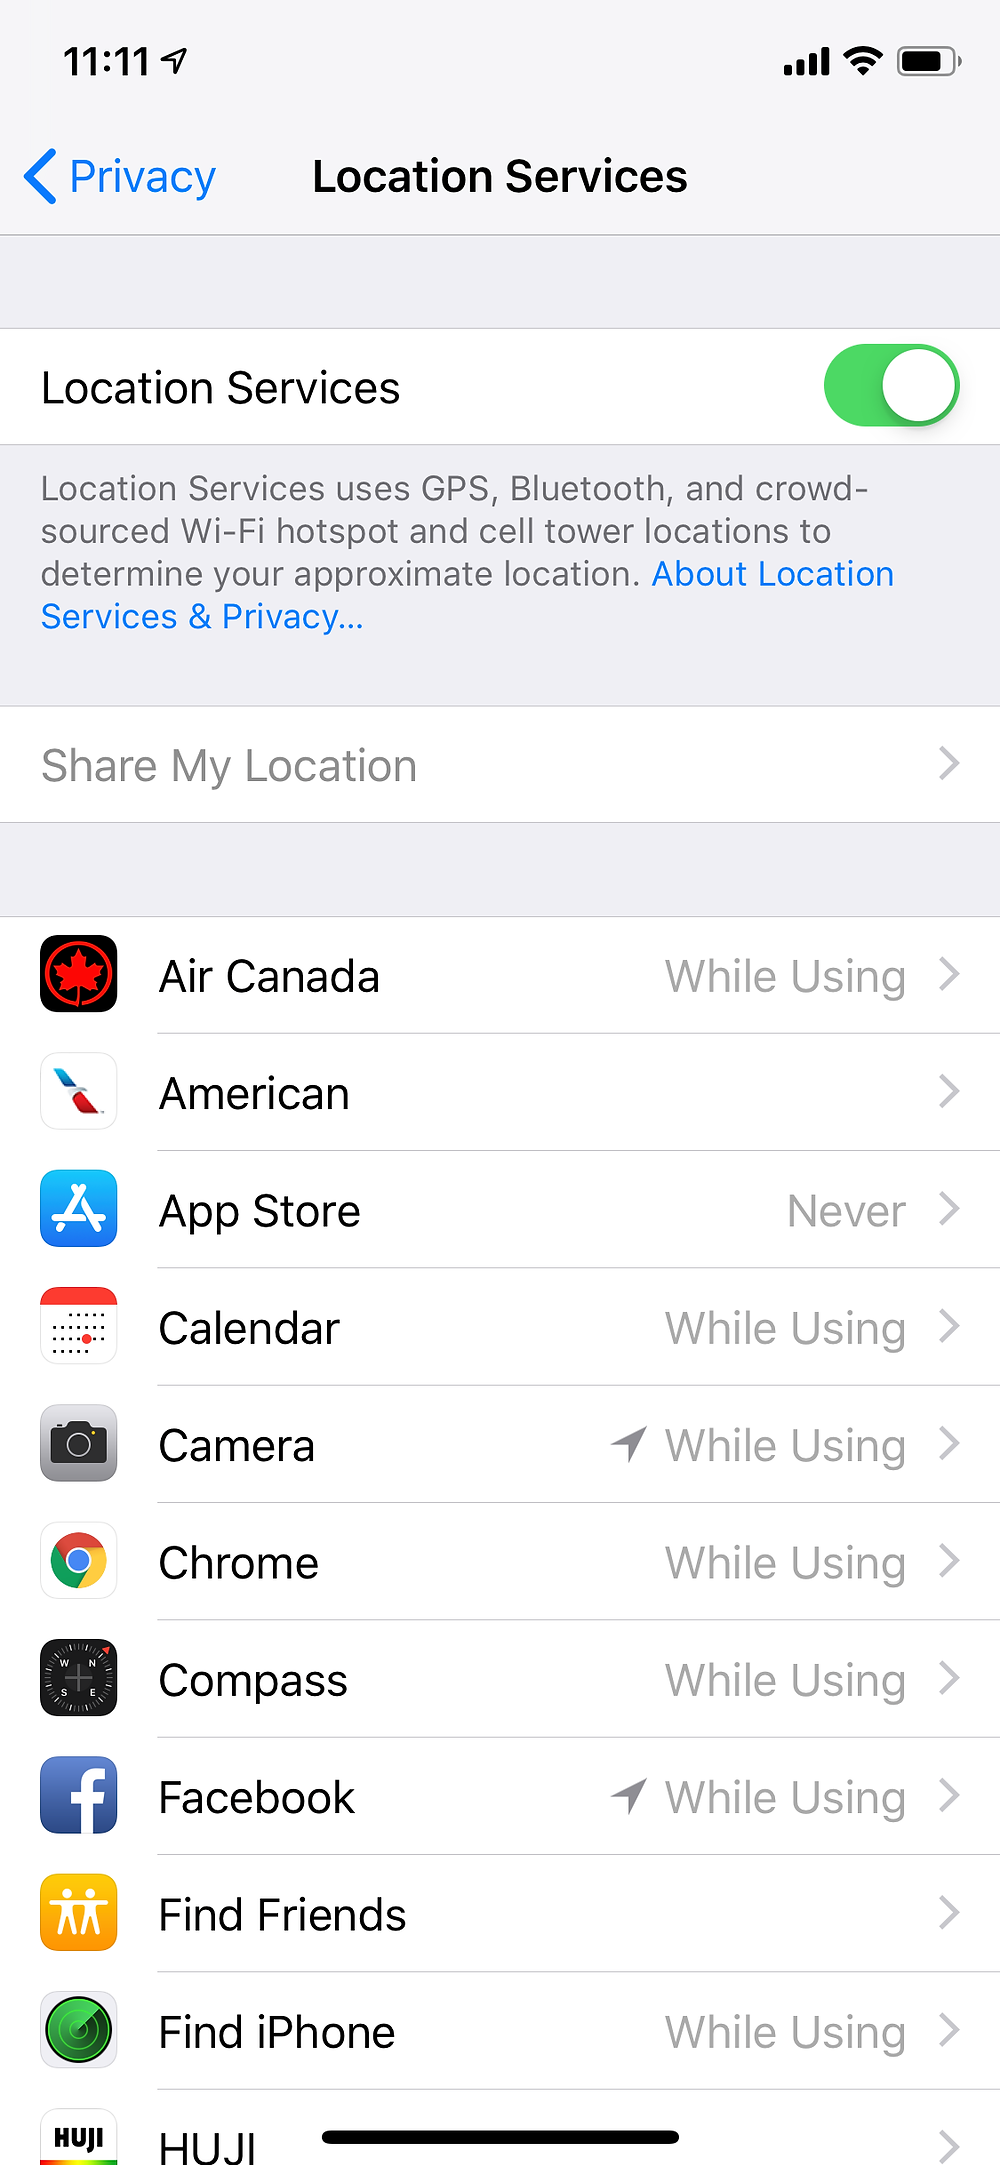 Location Services menu